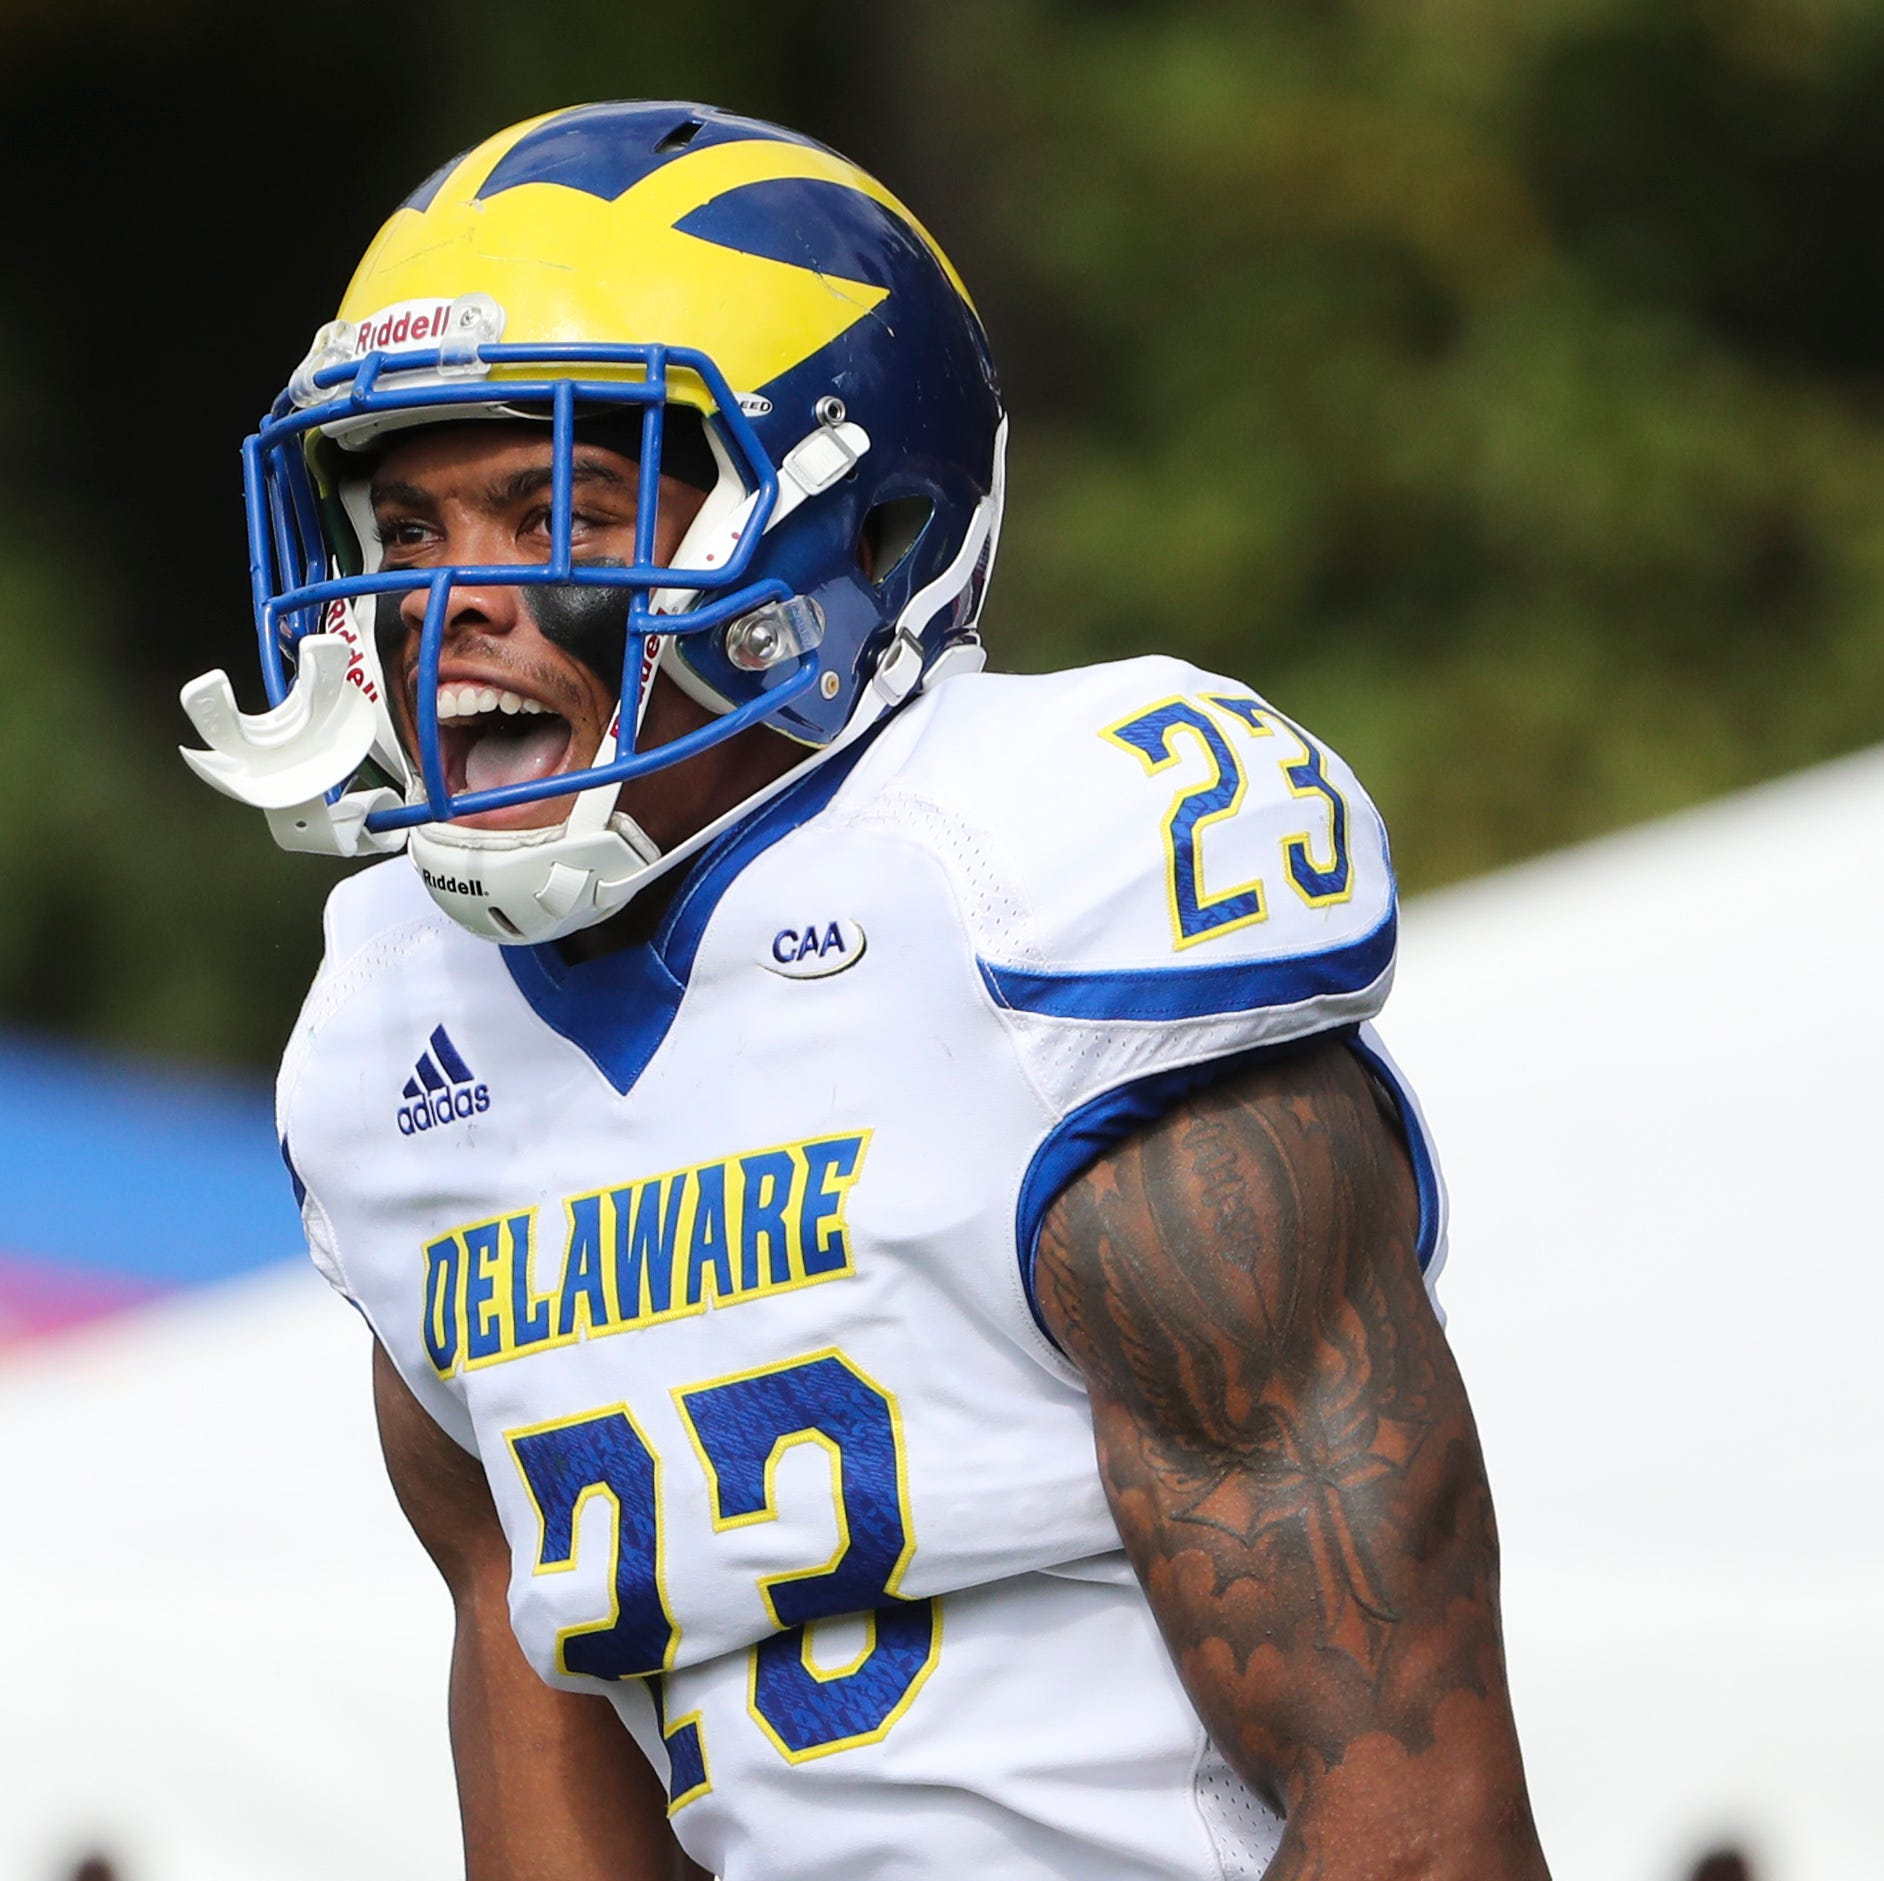 Tresolini: How University of Delaware beat FBS schools to snag top player Nasir Adderley